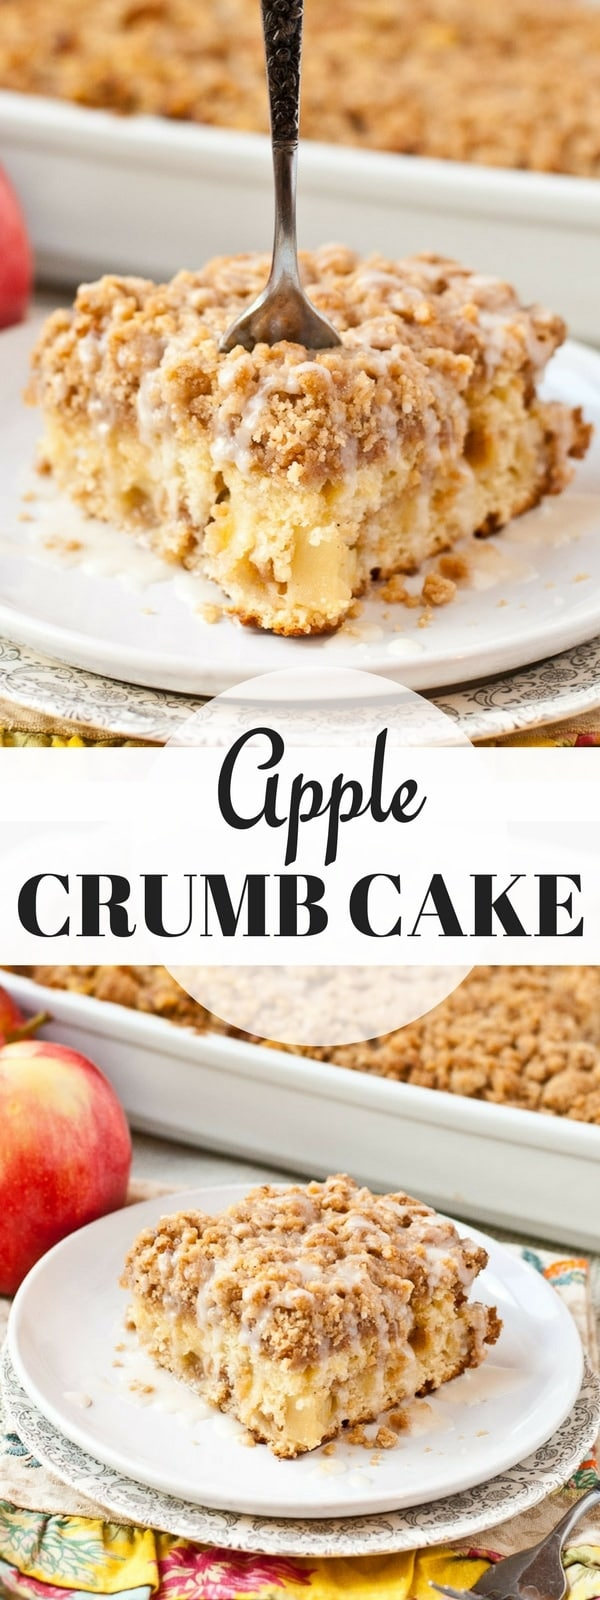 This Apple Crumb Coffee Cake is dotted with apples and an amazing crumb topping for a great fall dessert or breakfast!